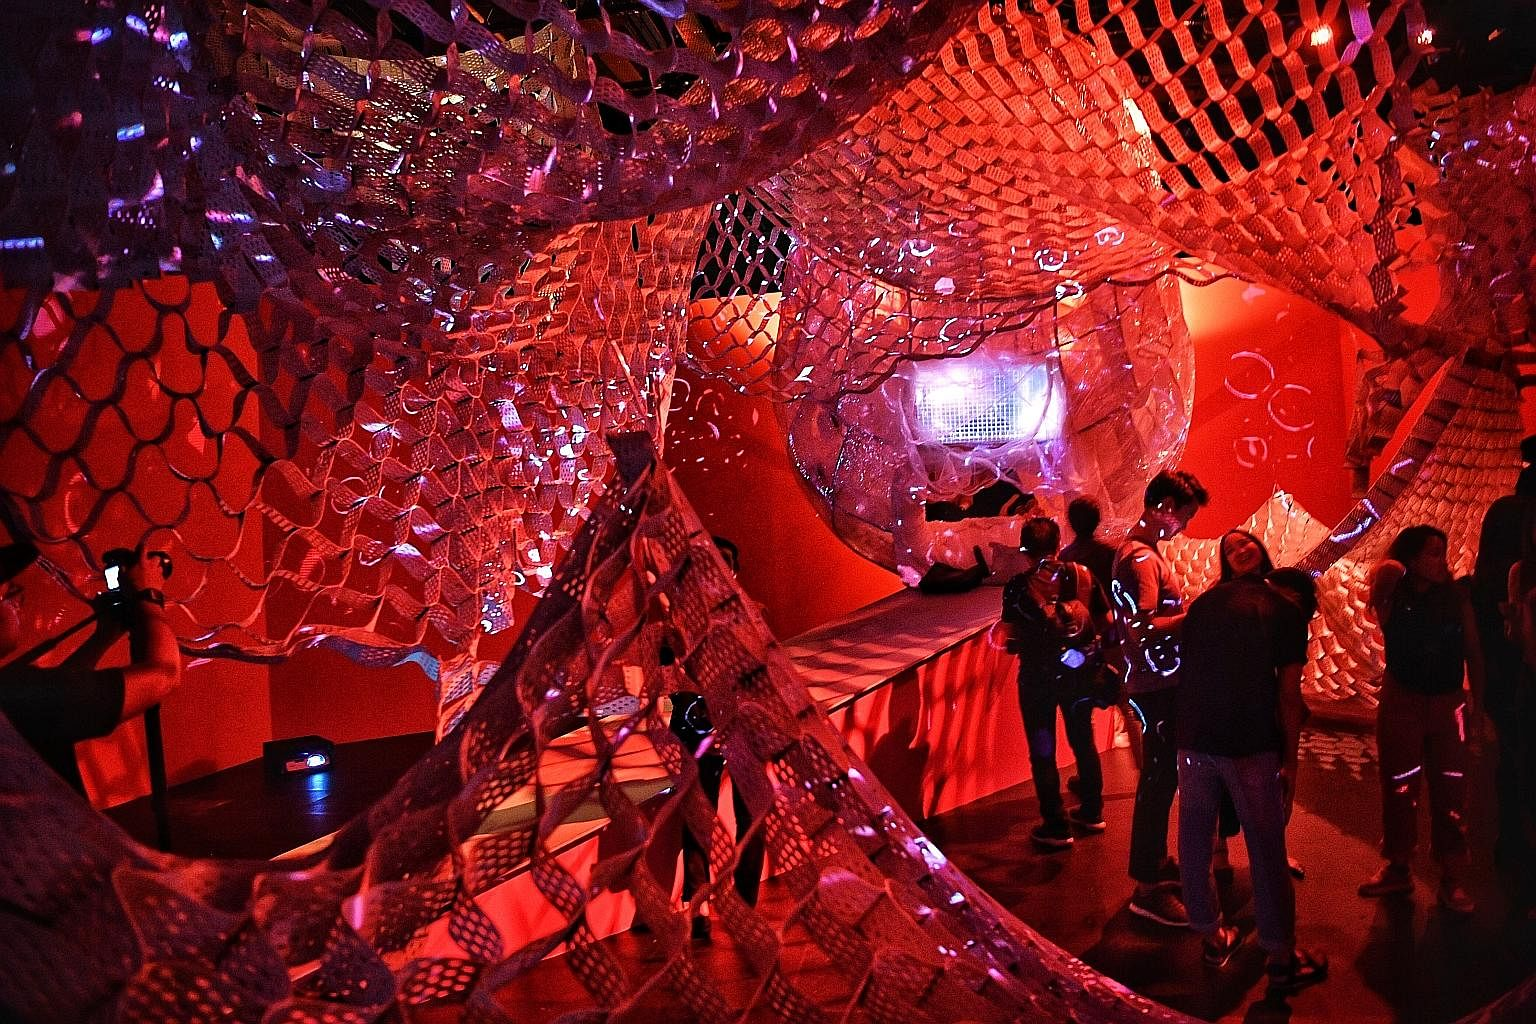 Sonic Womb by Randy Chan on display during Singapore Art Week last year. The coronavirus outbreak has hit arts groups hard, forcing them to cancel or postpone their shows and the industry to chalk up huge losses. But it has also been a catalyst for d